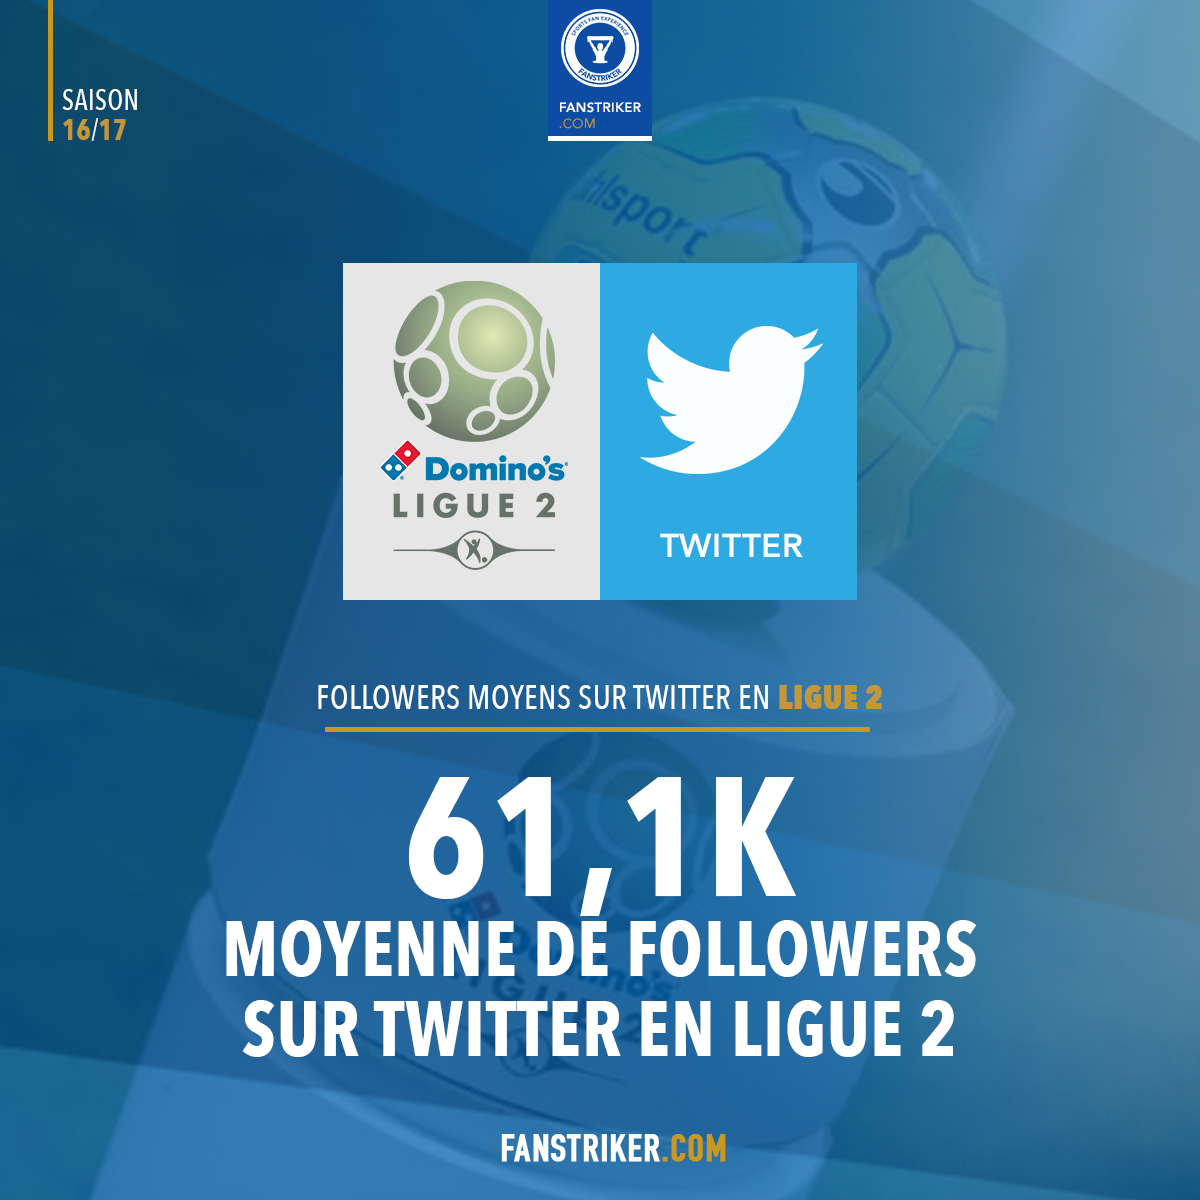 Le nombre moyen de Followers en Ligue 2 sur Twitter